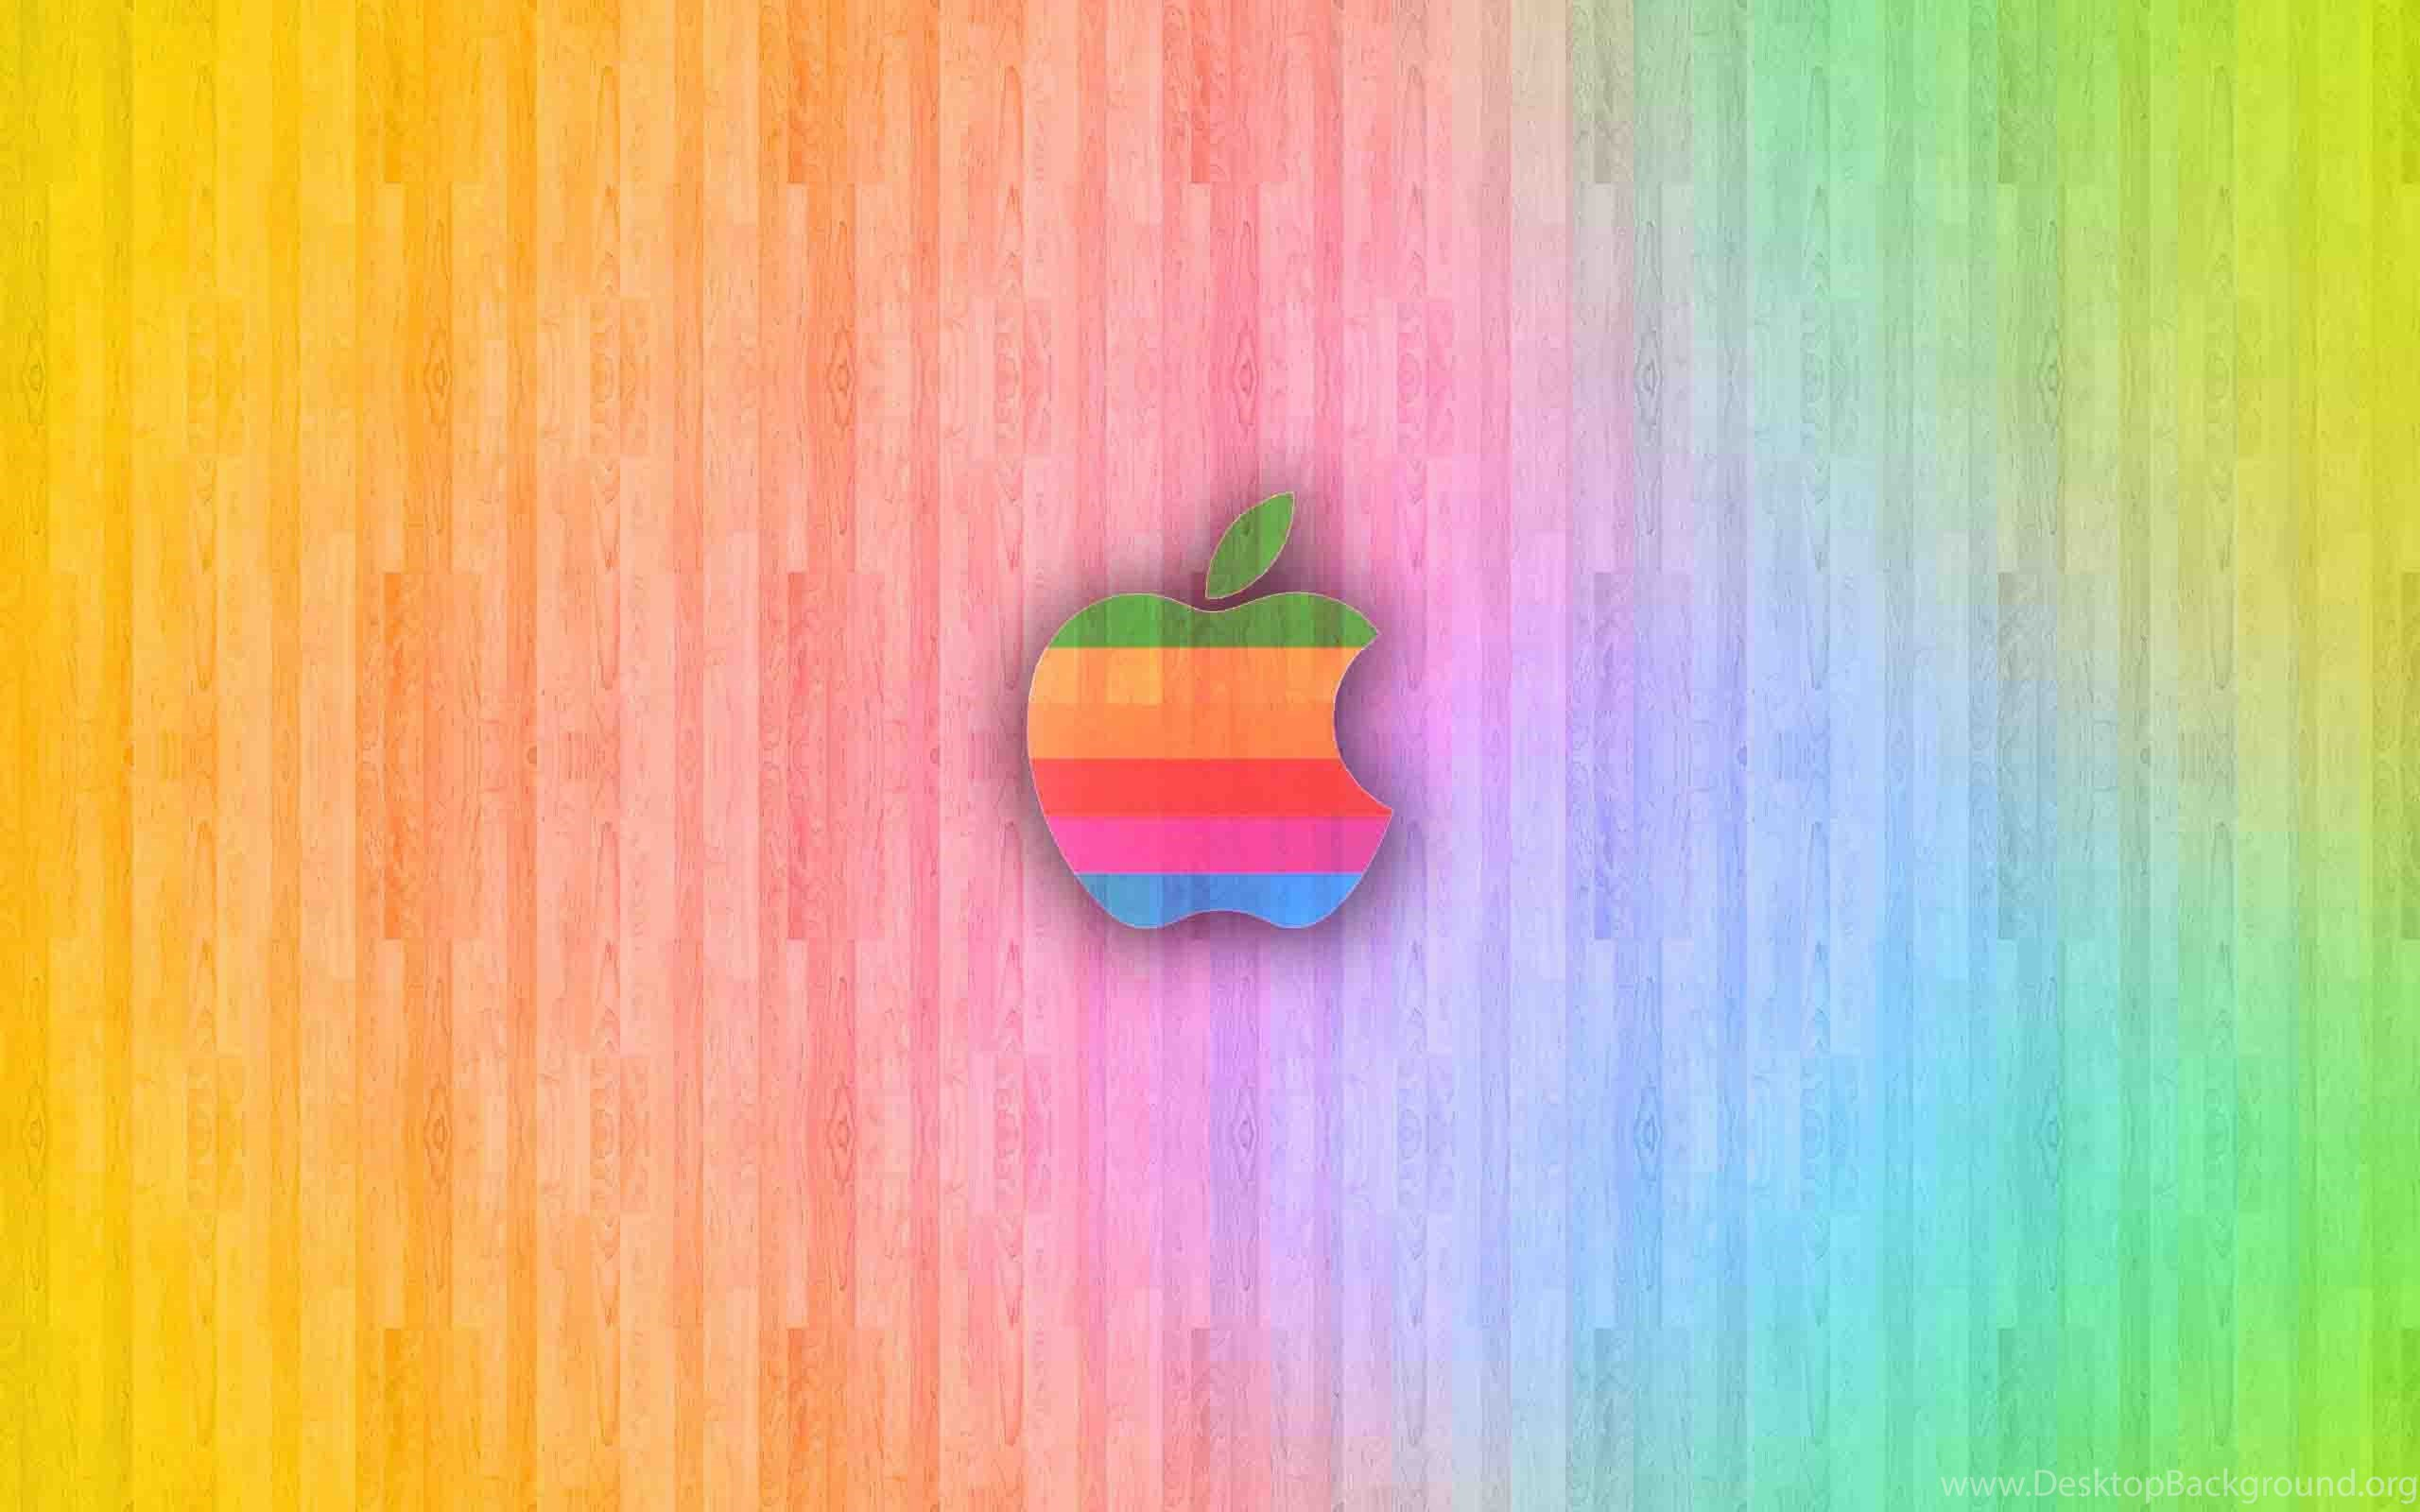 Top Wallpaper Mac Colorful - 863476_mac-ios-backgrounds-colorful-apple-logo-wallpapers_2560x1600_h  You Should Have_999927.jpg